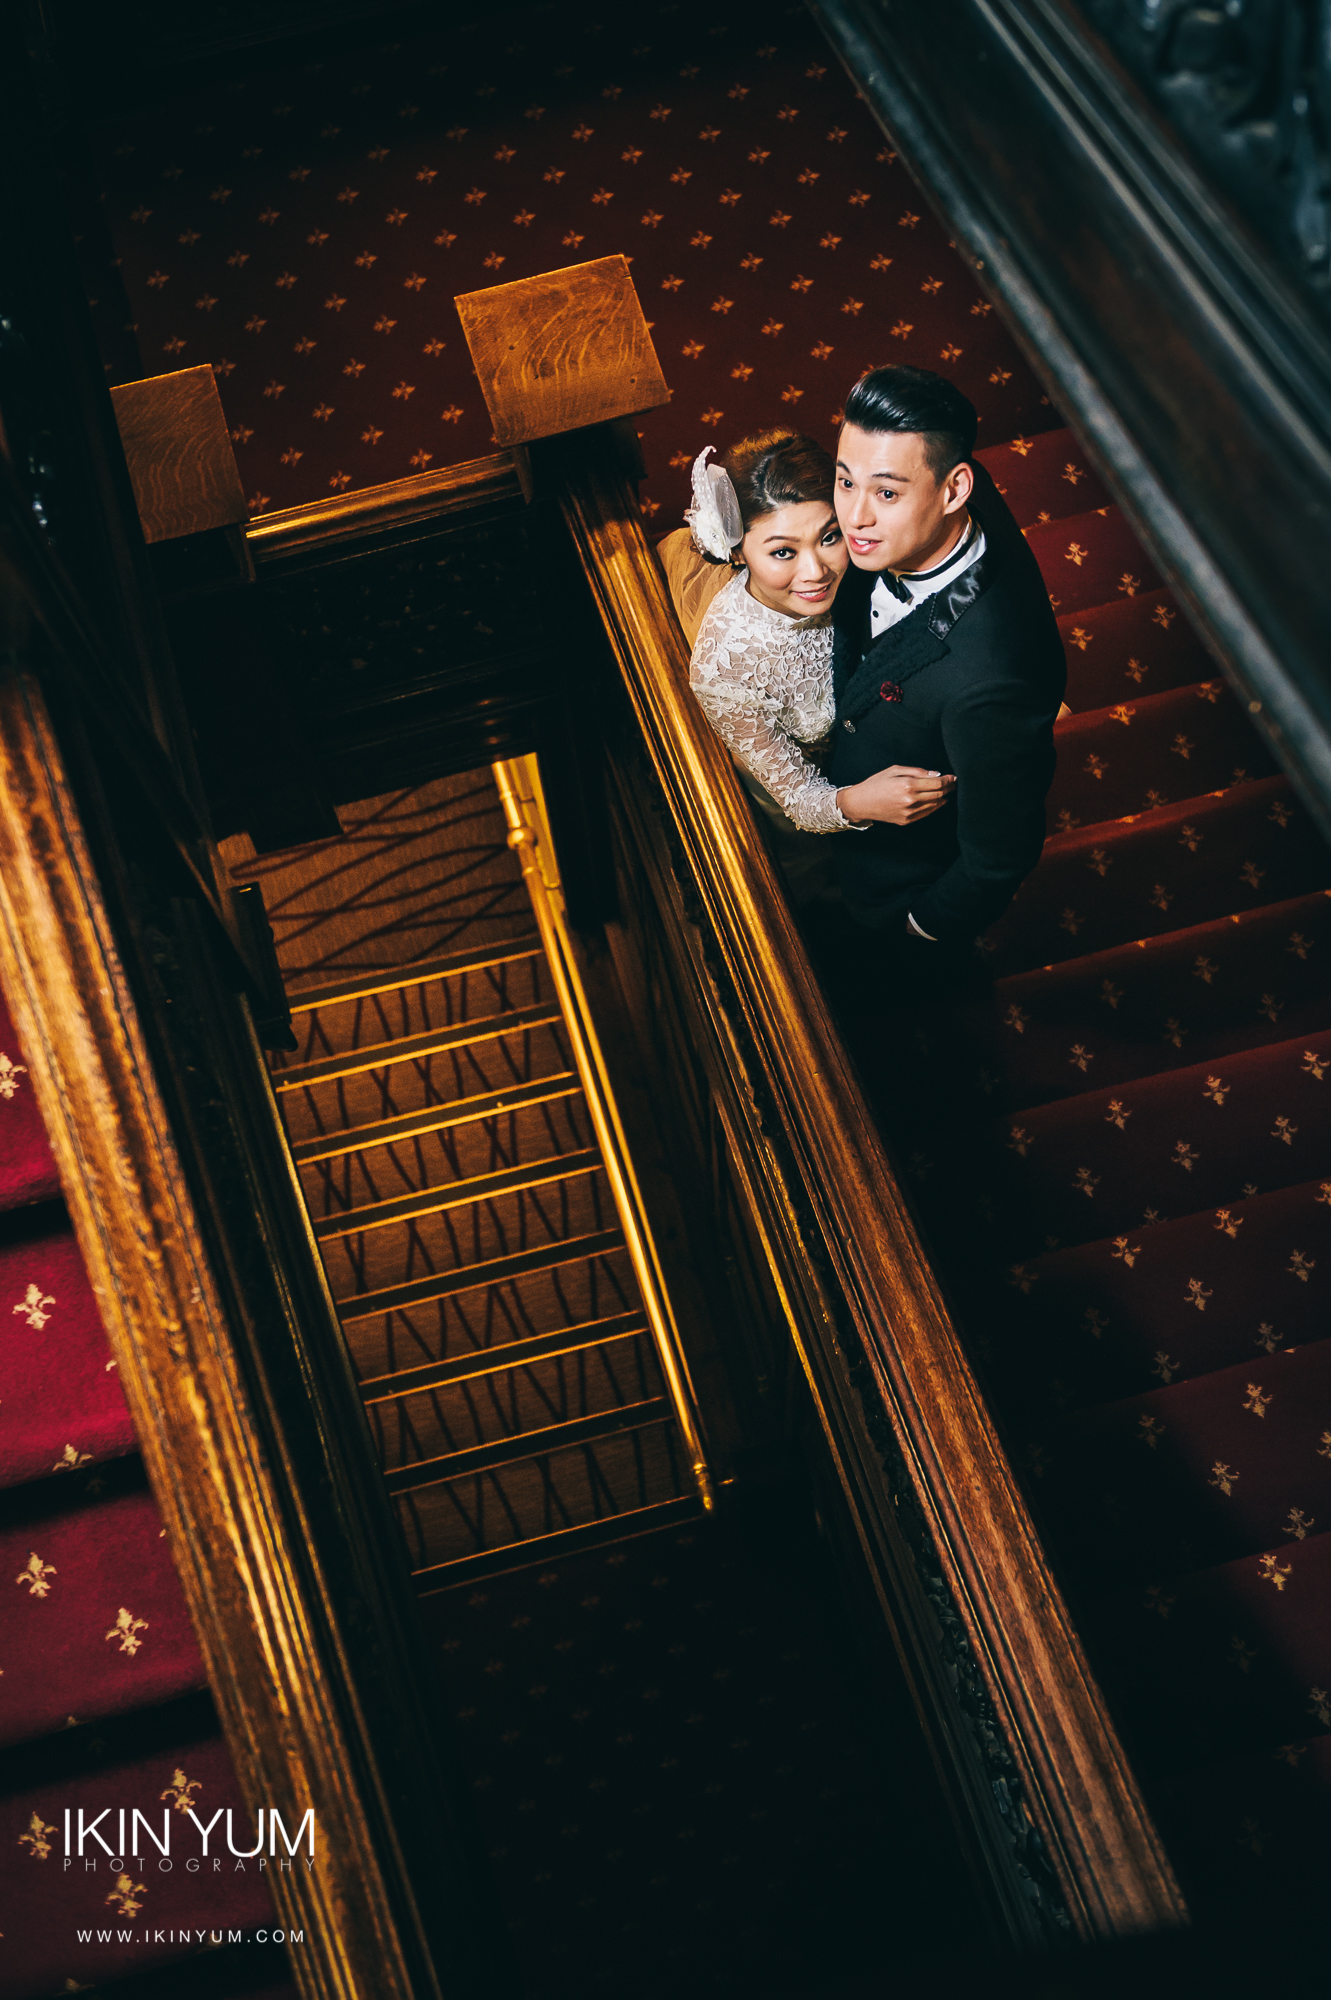 Pre-Wedding Shoot London Zann + Danny - Ikin Yum Photography-058.jpg